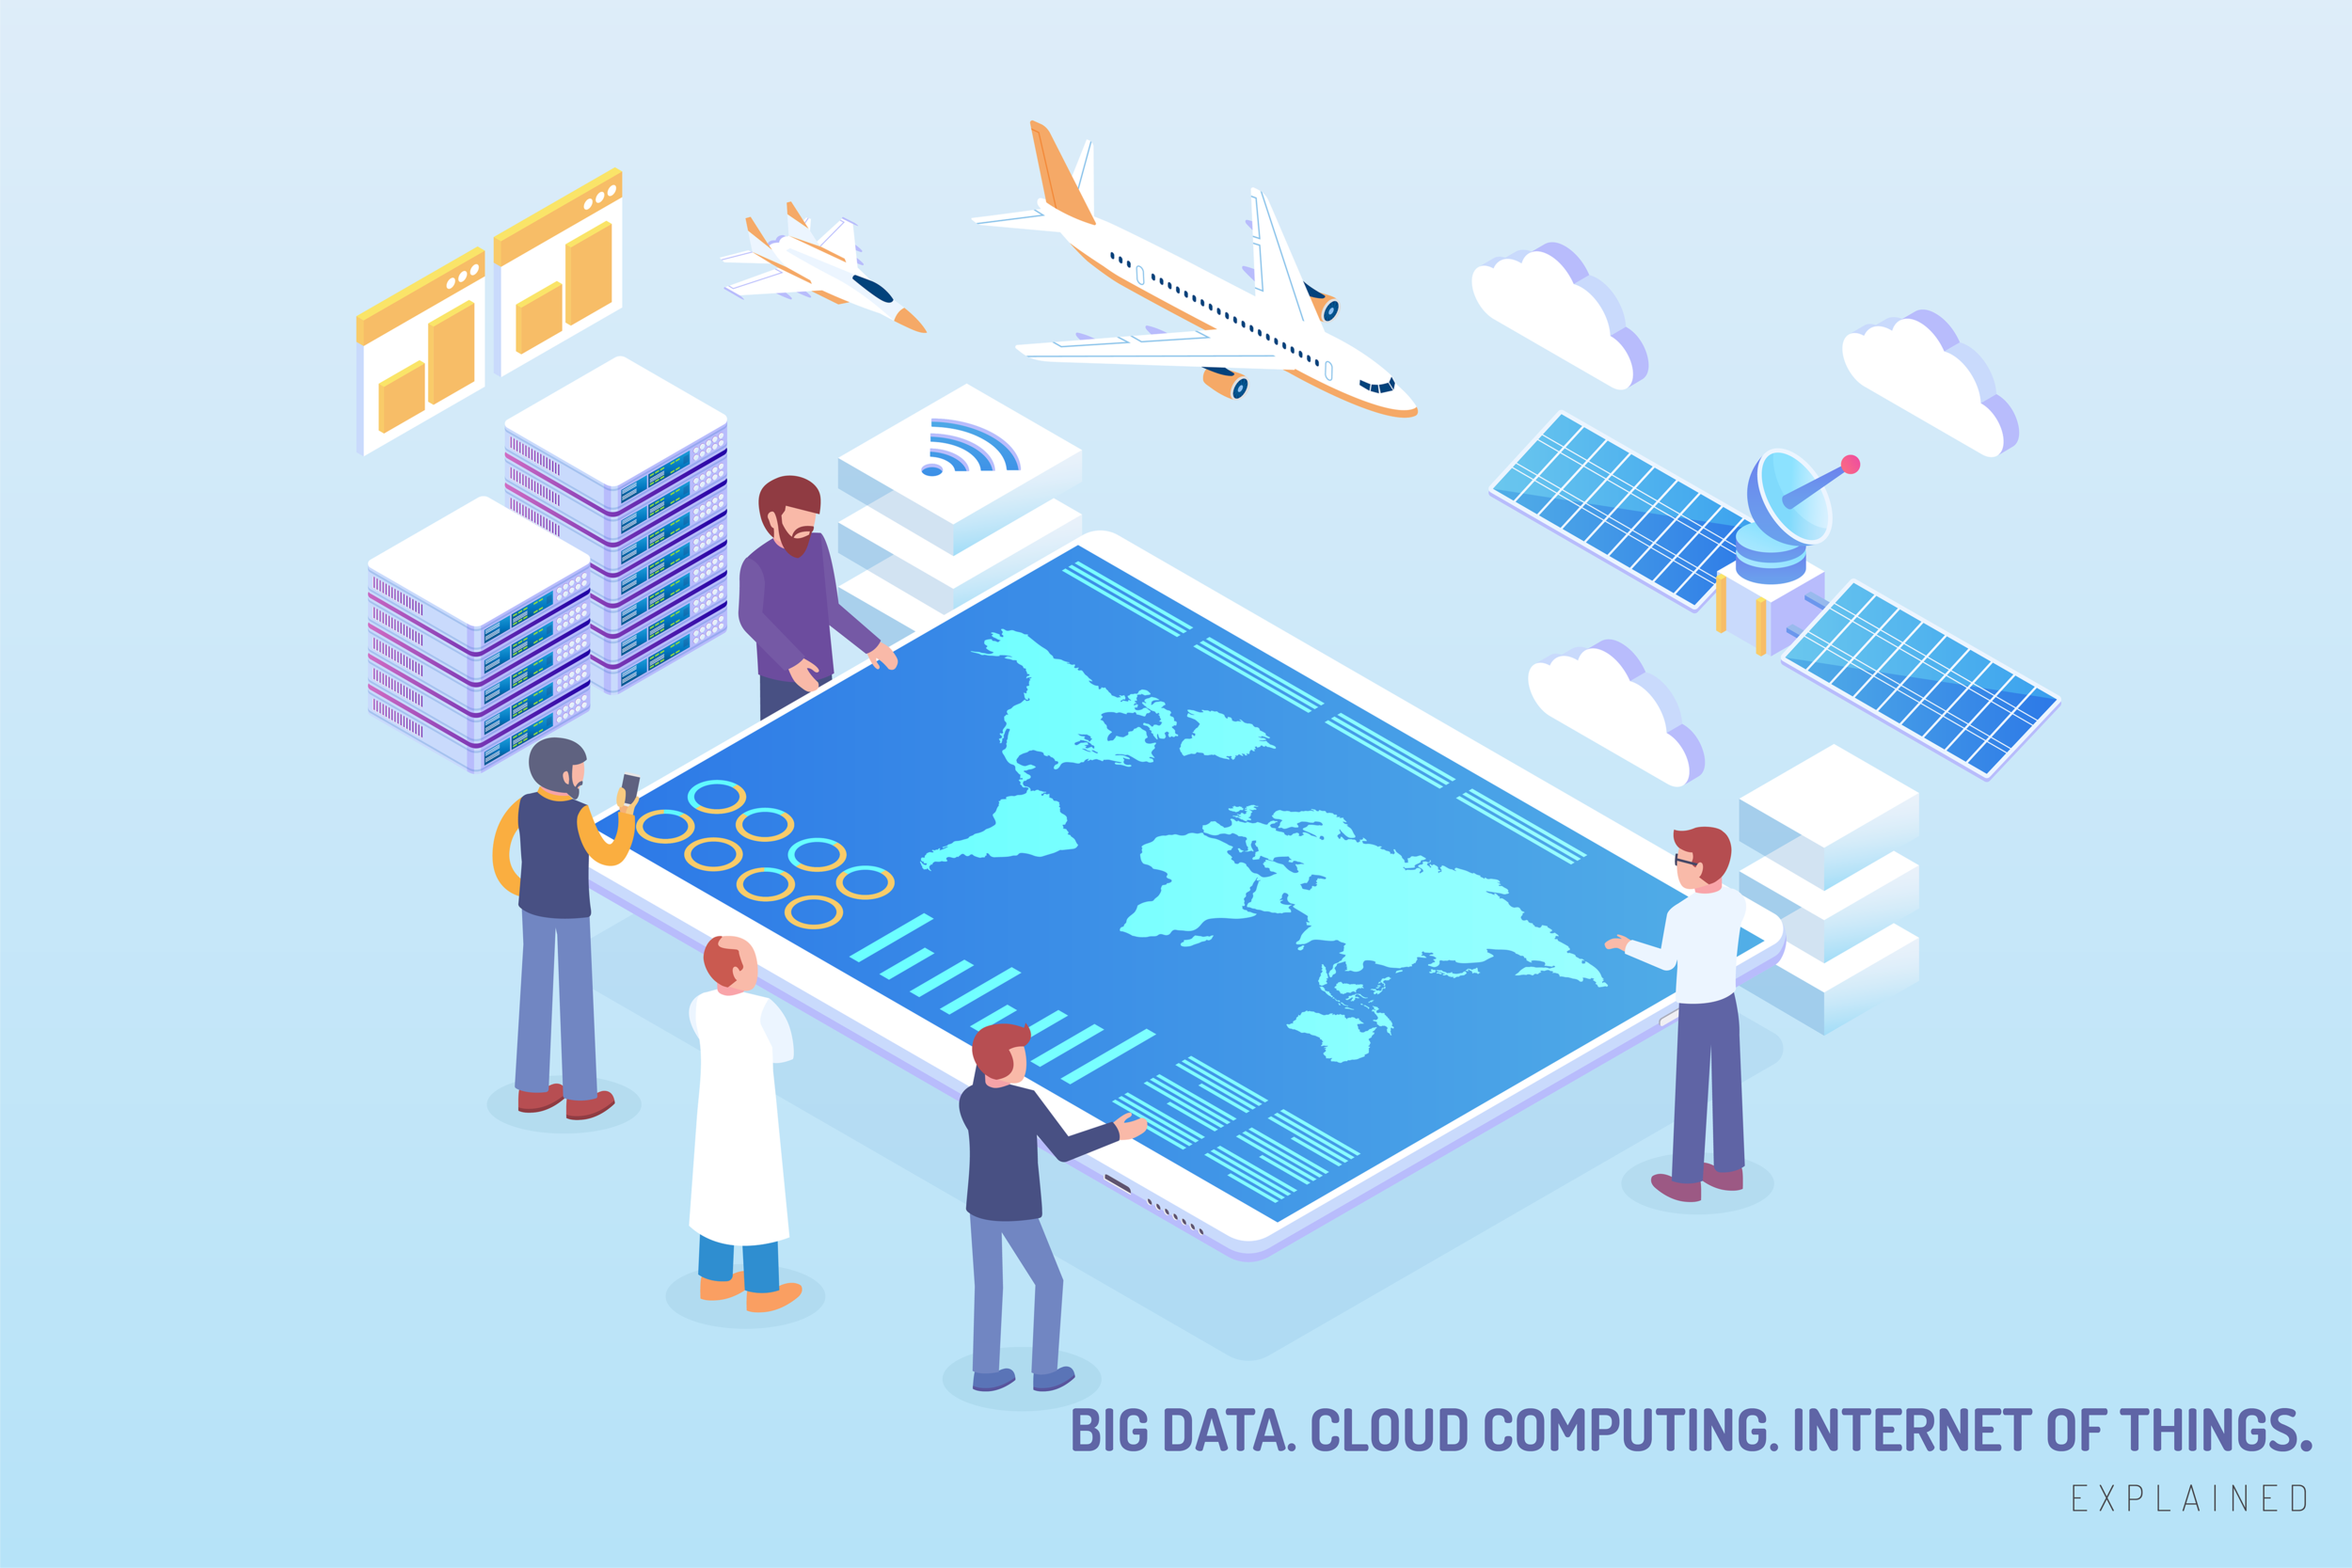 Big data, cloud computing and internet of things—explained.